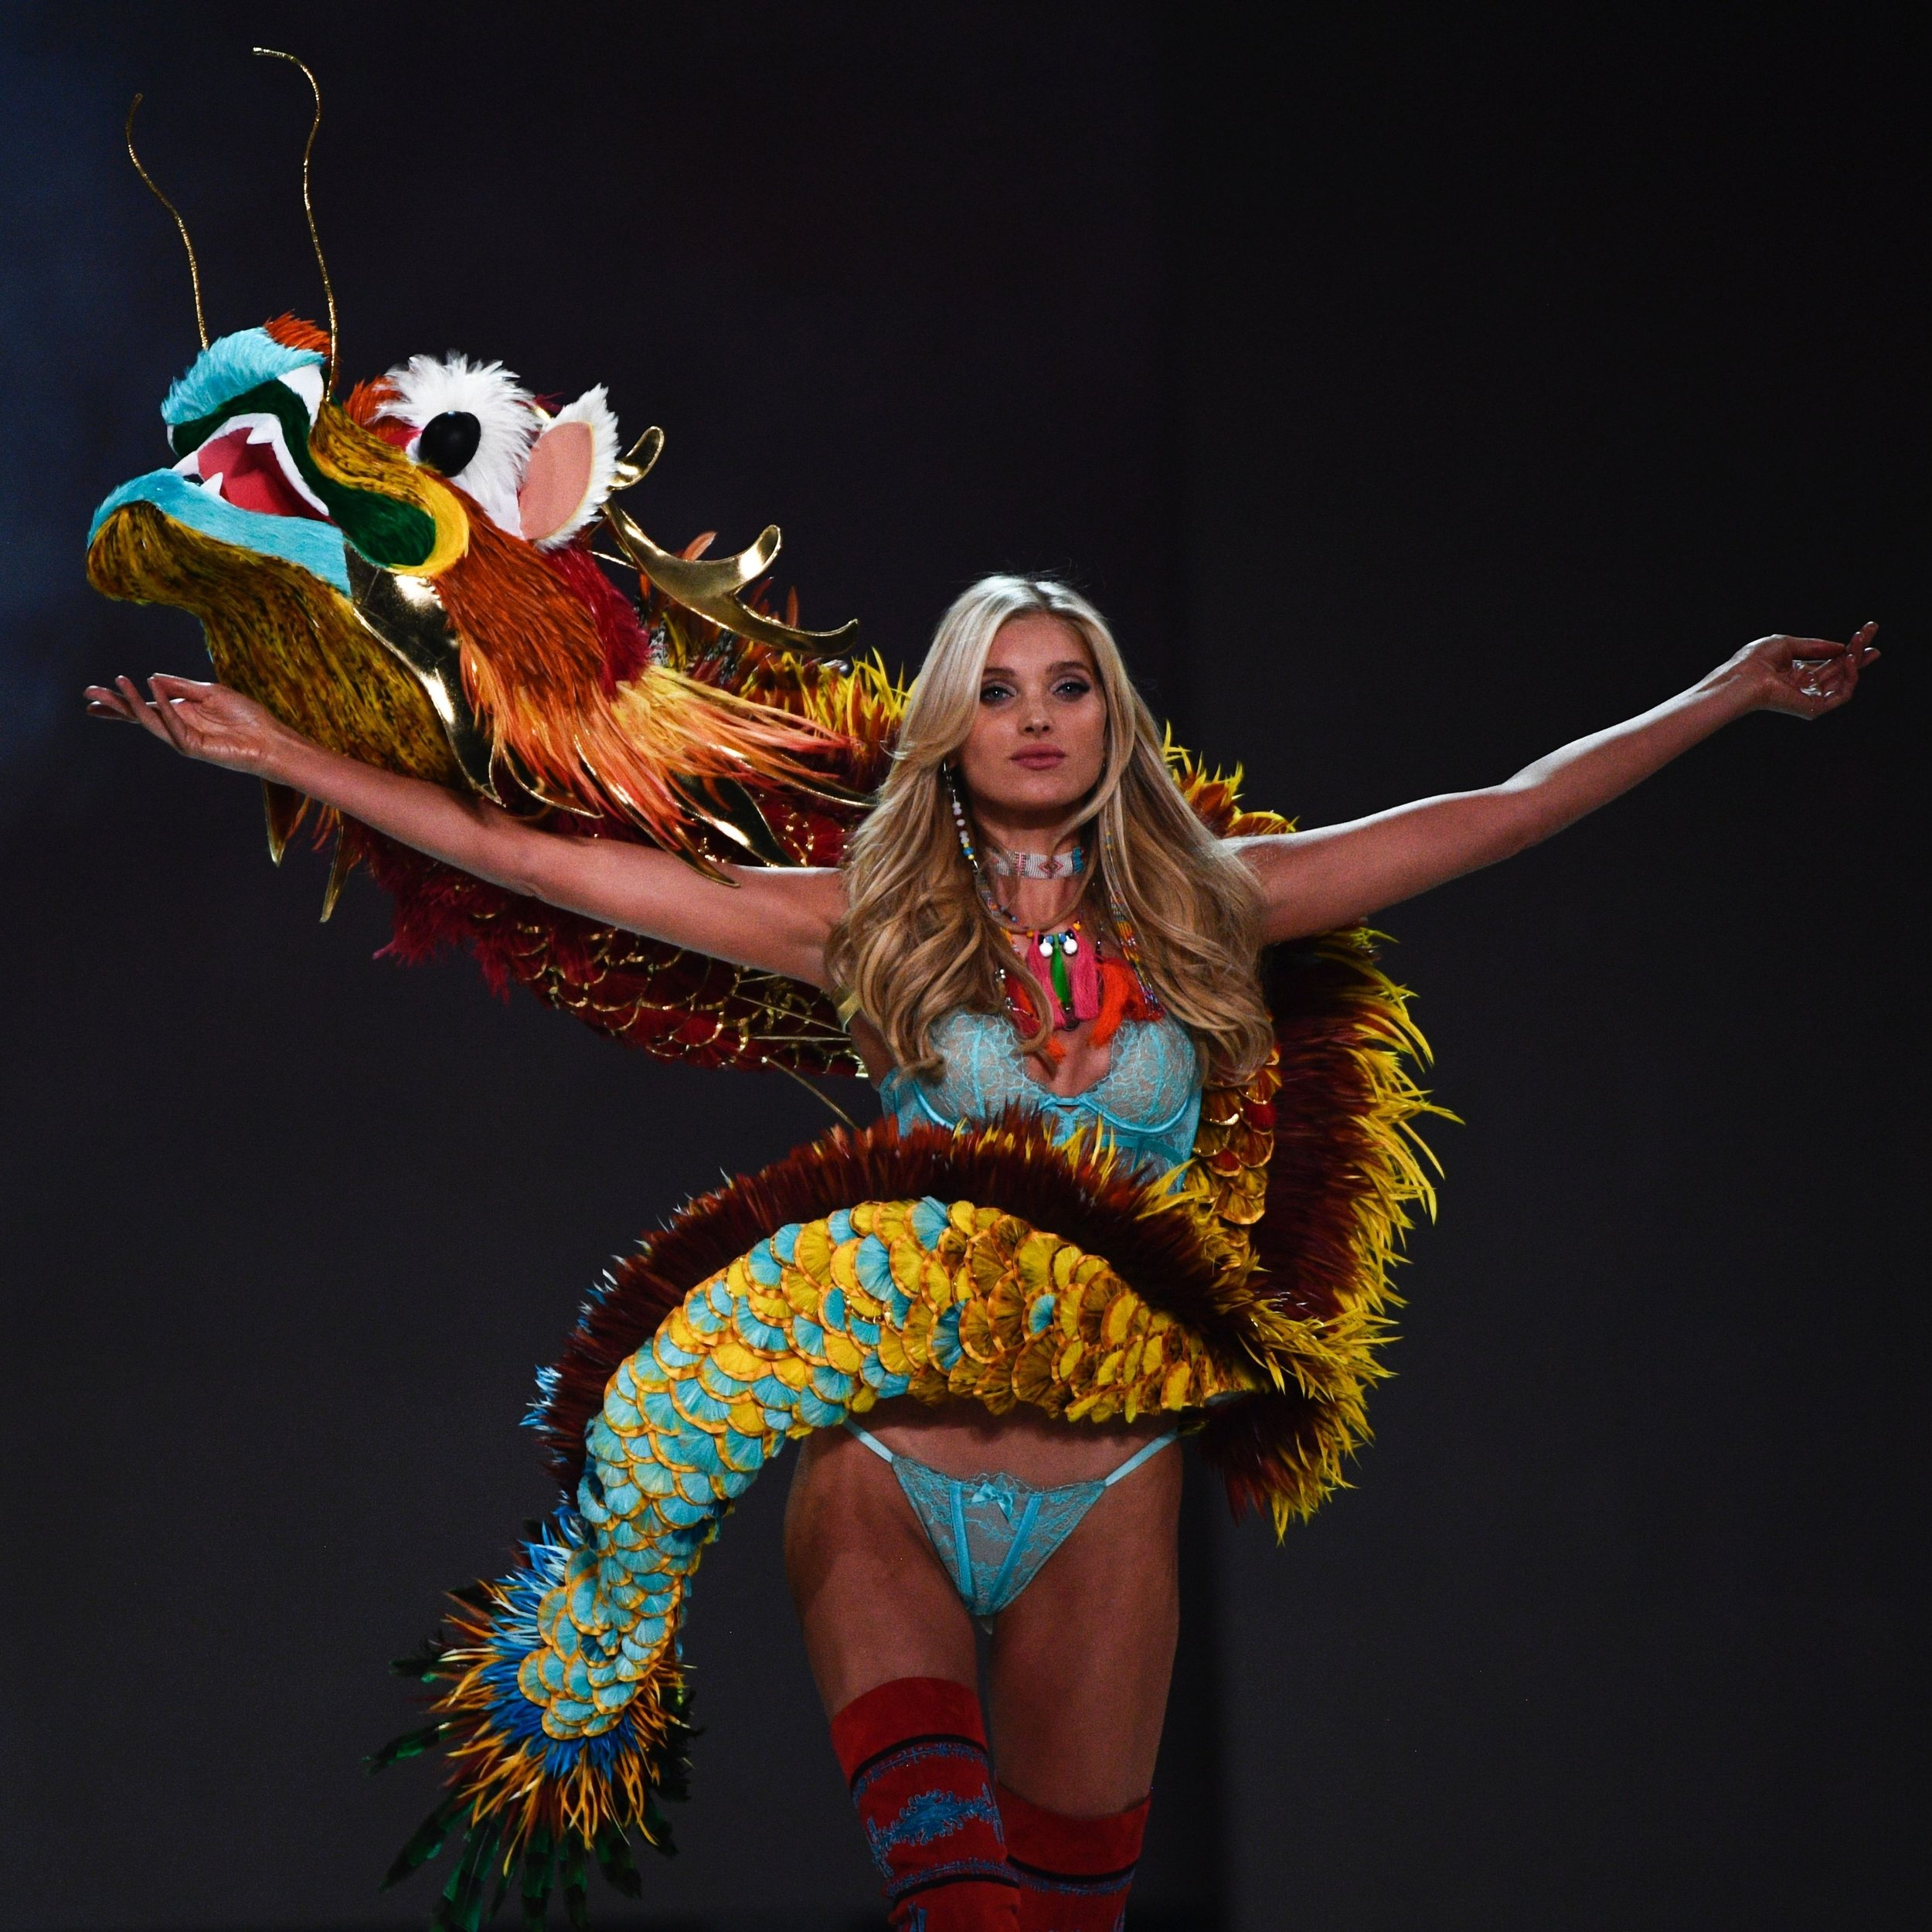 The Victoria's Secret runway dragon that received widespread Backlash in 2016.